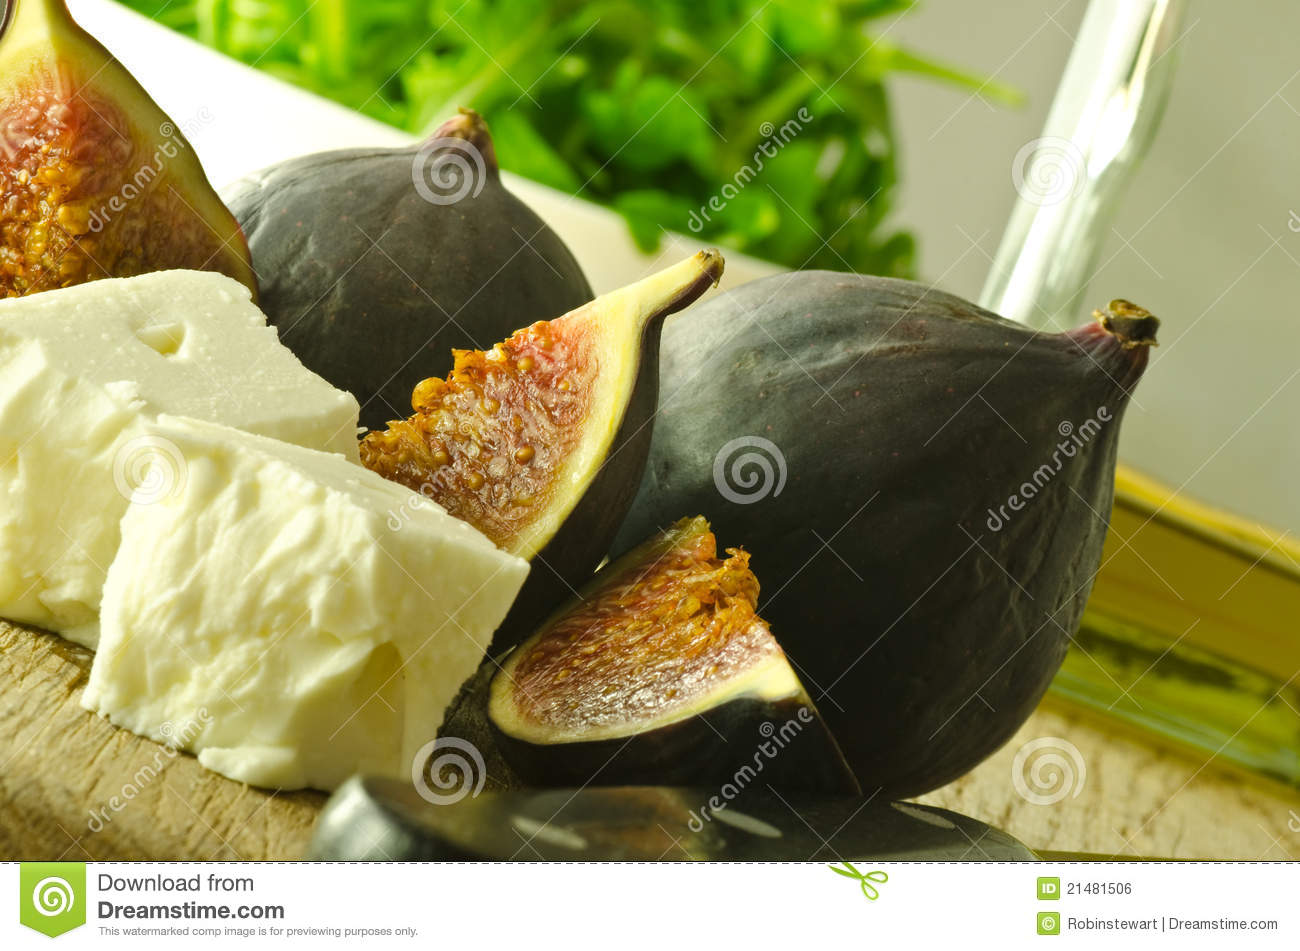 Figs And Feta Cheese Royalty Free Stock Image - Image: 21481506